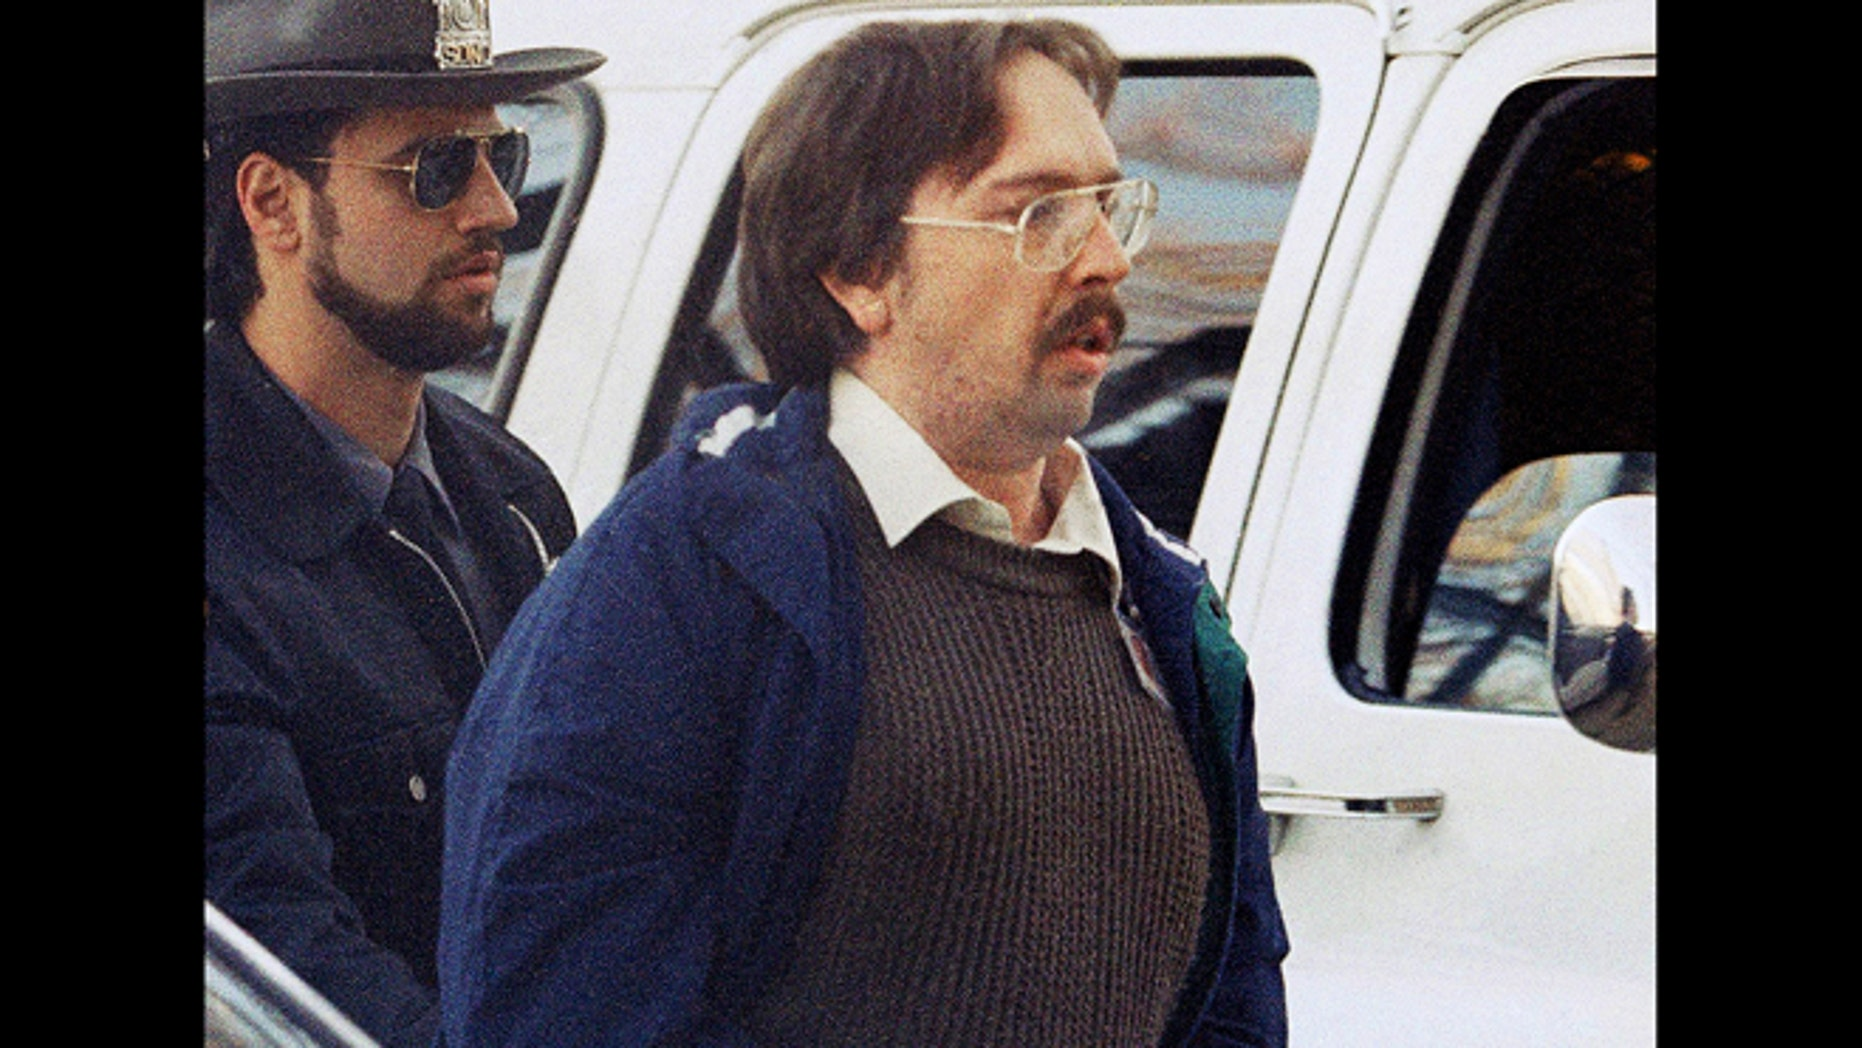 In this Dec. 17, 1993 file photo, Joel Rifkin, right, is led to the Nassau County Courthouse in Mineola, N.Y., for a suppression hearing.  New Jersey State Police said Wednesday, March 27, 2013, that 25-year-old Heidi Balch likely was the first victim of Rifkin, who is in prison in New York after admitting he killed 17 women in the early 1990s. Balchs severed head was found on a golf course in Hopewell Township, near Trenton, N.J., in March 1989.